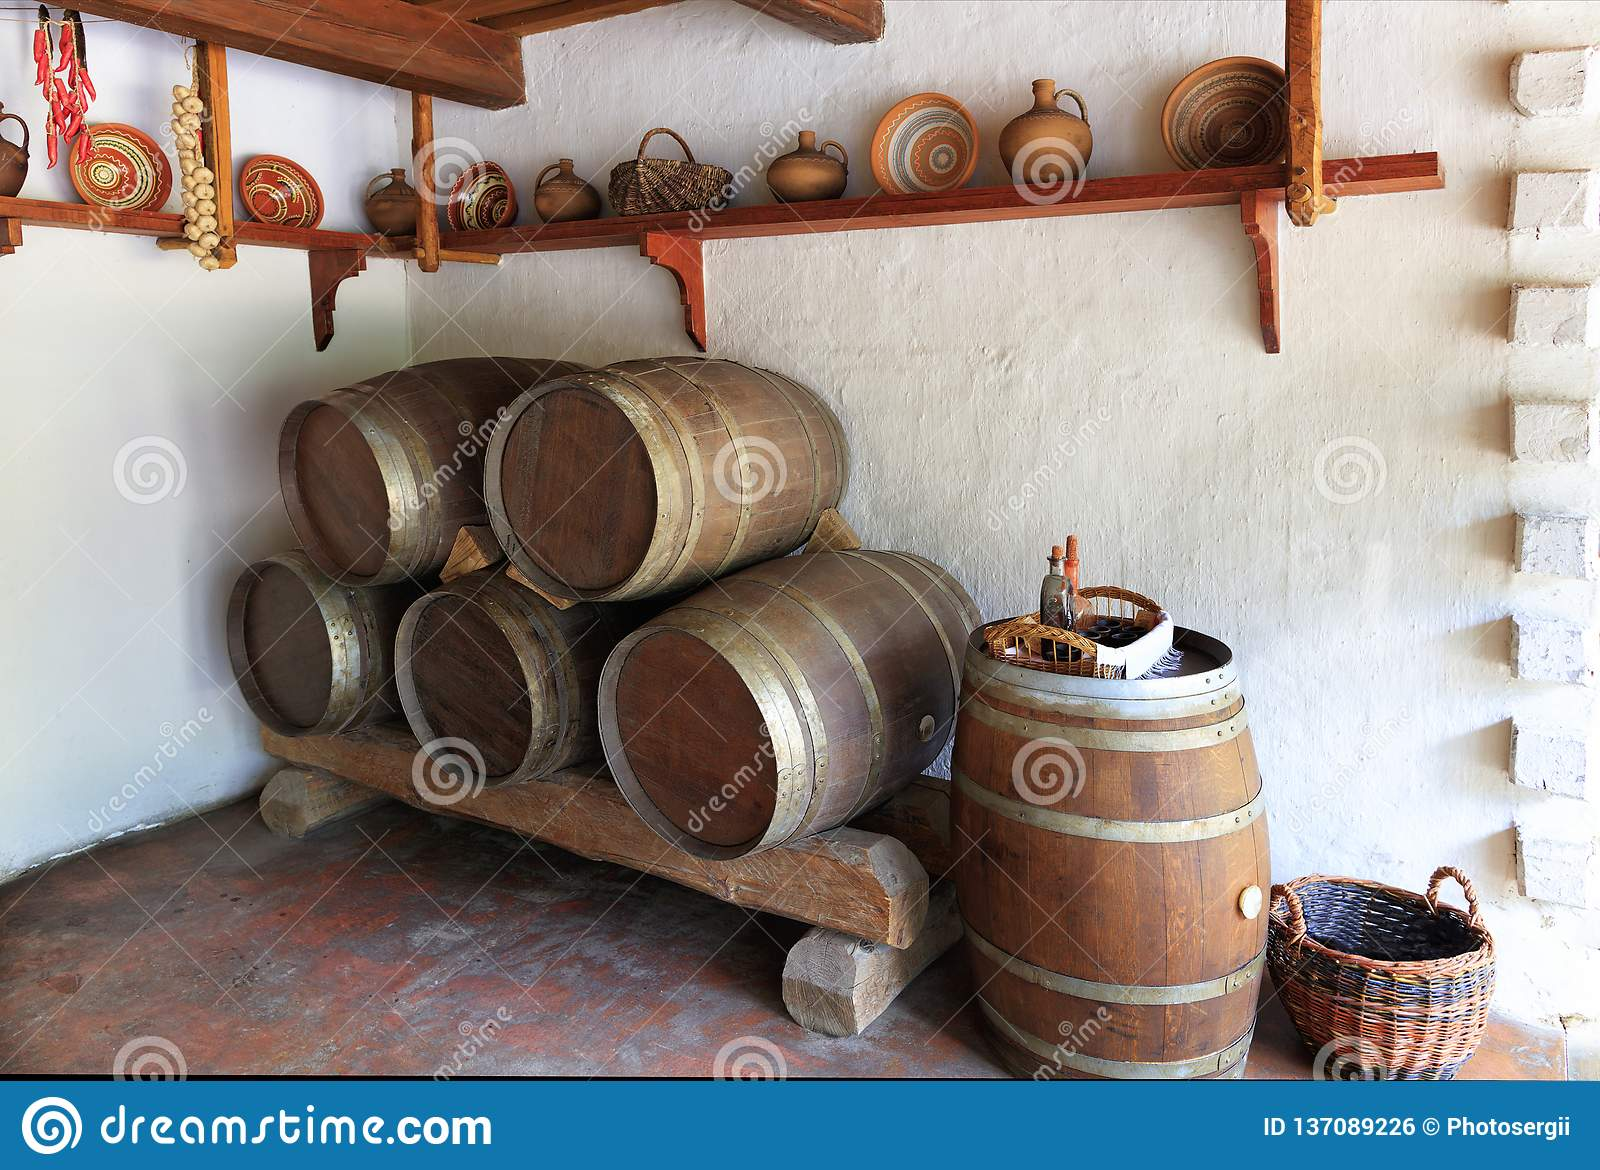 View of the old wine room of the Ukrainian rural home, kitchen utensils and wooden oak barrels